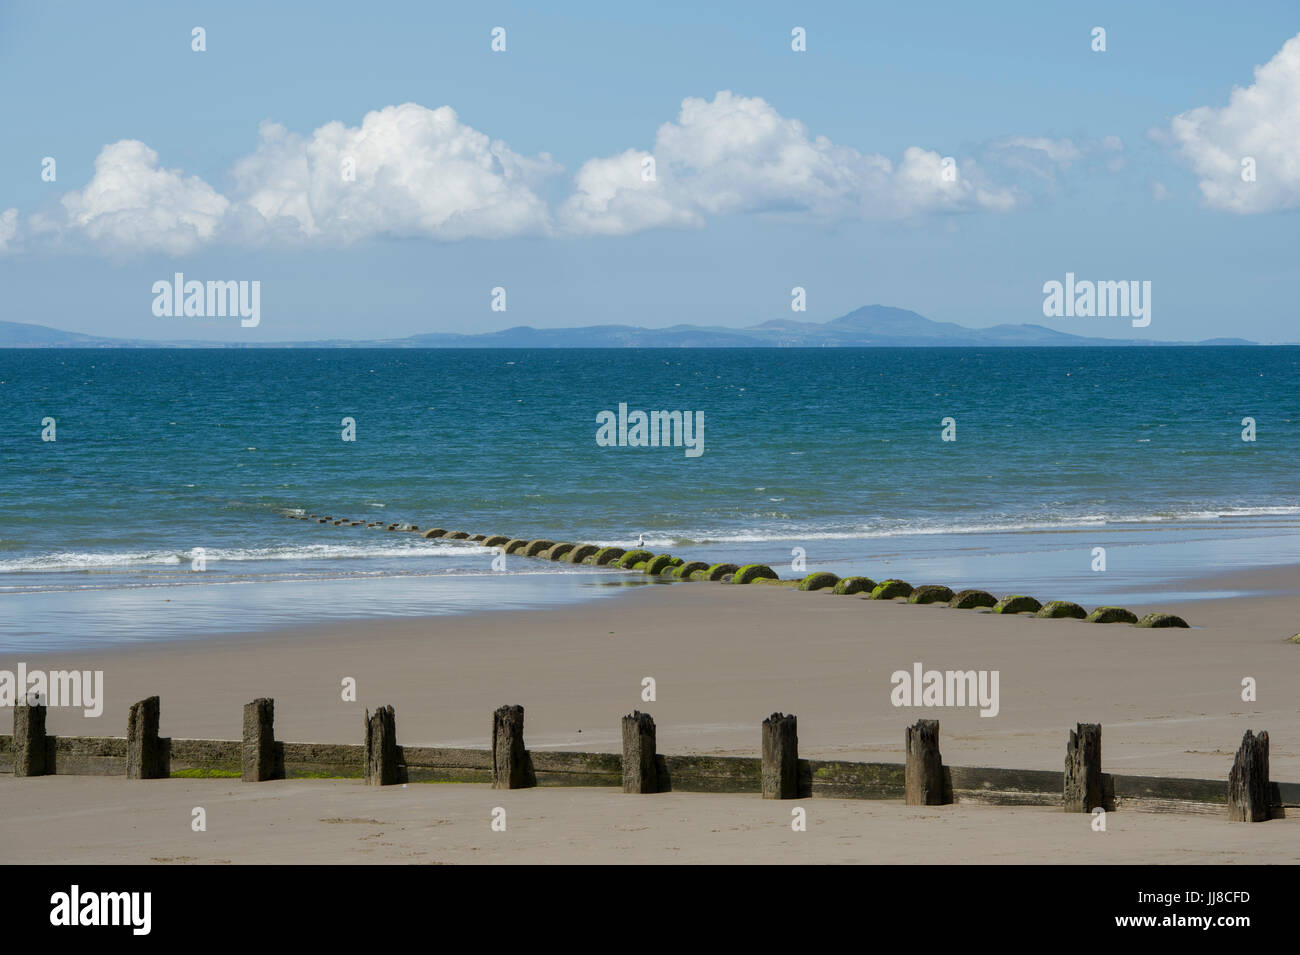 The view from the beach at Barmouth in Wales looking out over Cardigan Bay to the Llŷn Peninsula (Pen Llŷn) on the Stock Photo